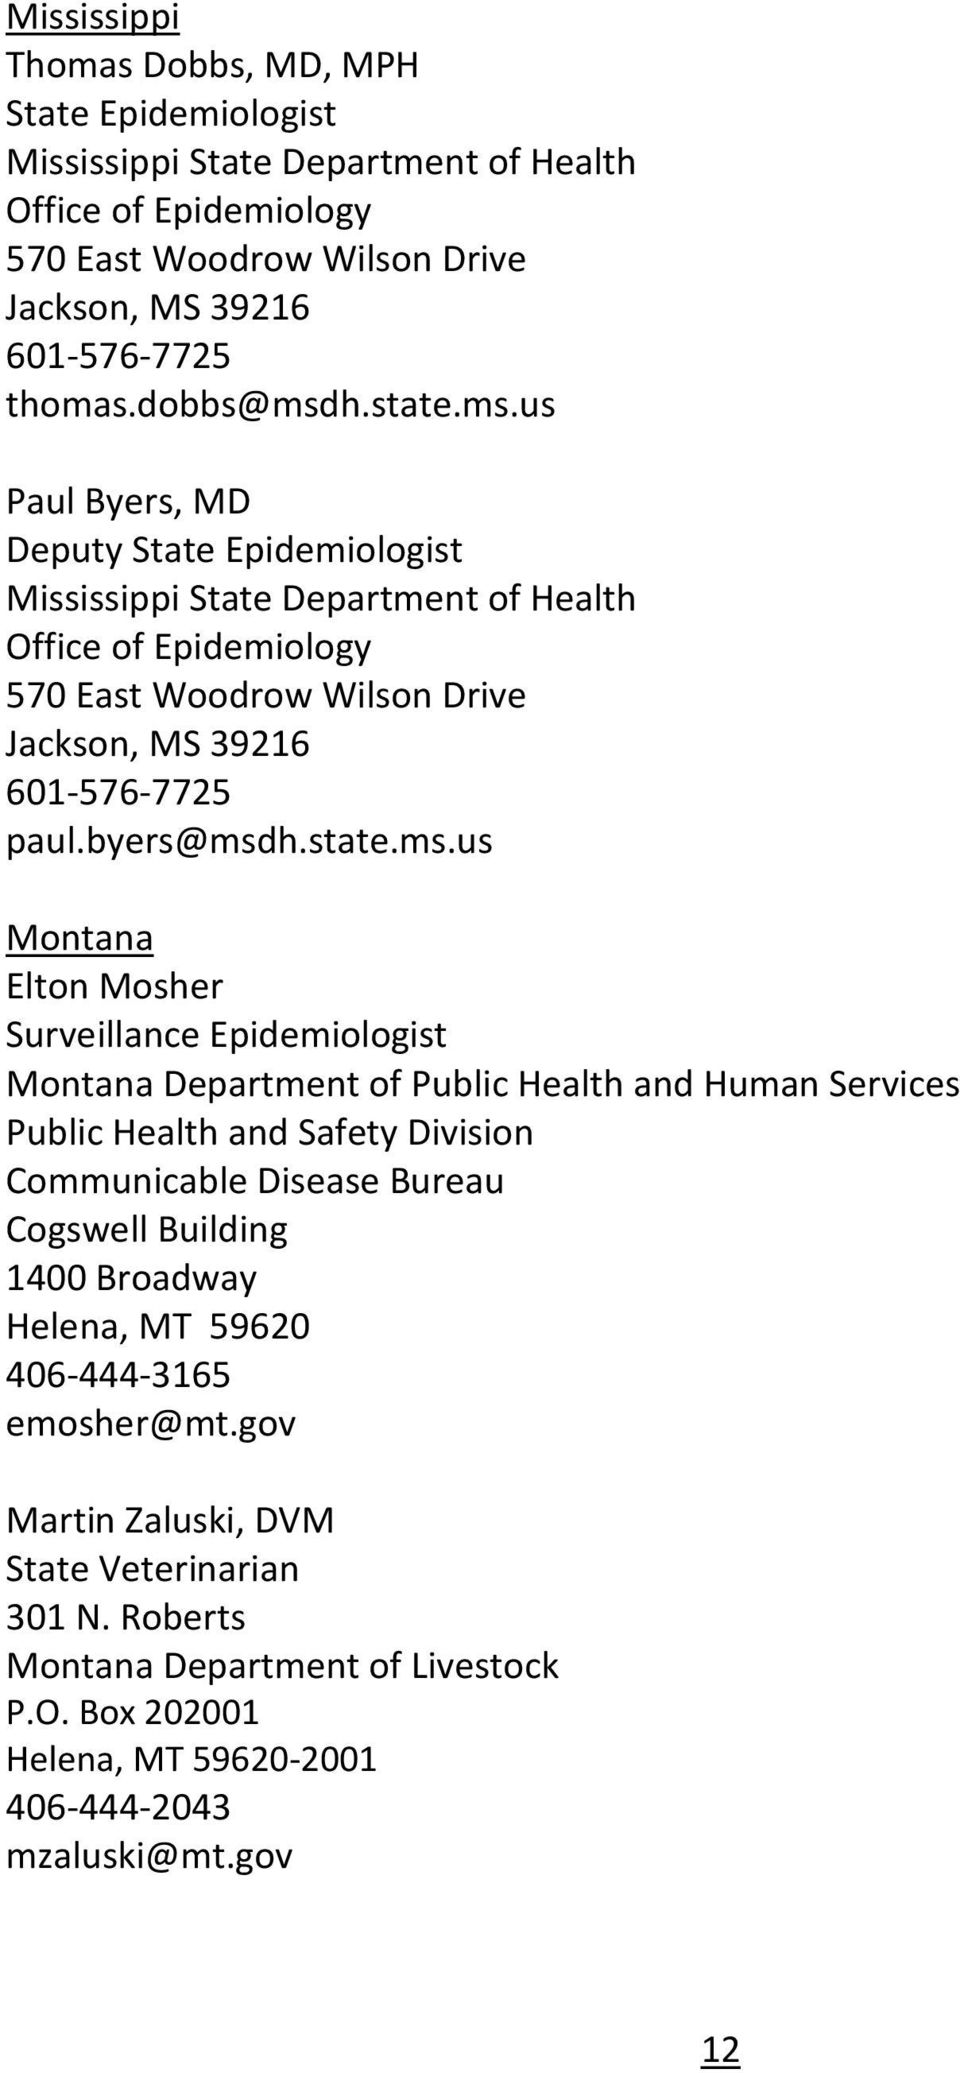 us Paul Byers, MD Deputy State Epidemiologist Mississippi State Department of Health Office of Epidemiology 570 East Woodrow Wilson Drive Jackson, MS 39216 601-576-7725 paul.byers@msdh.